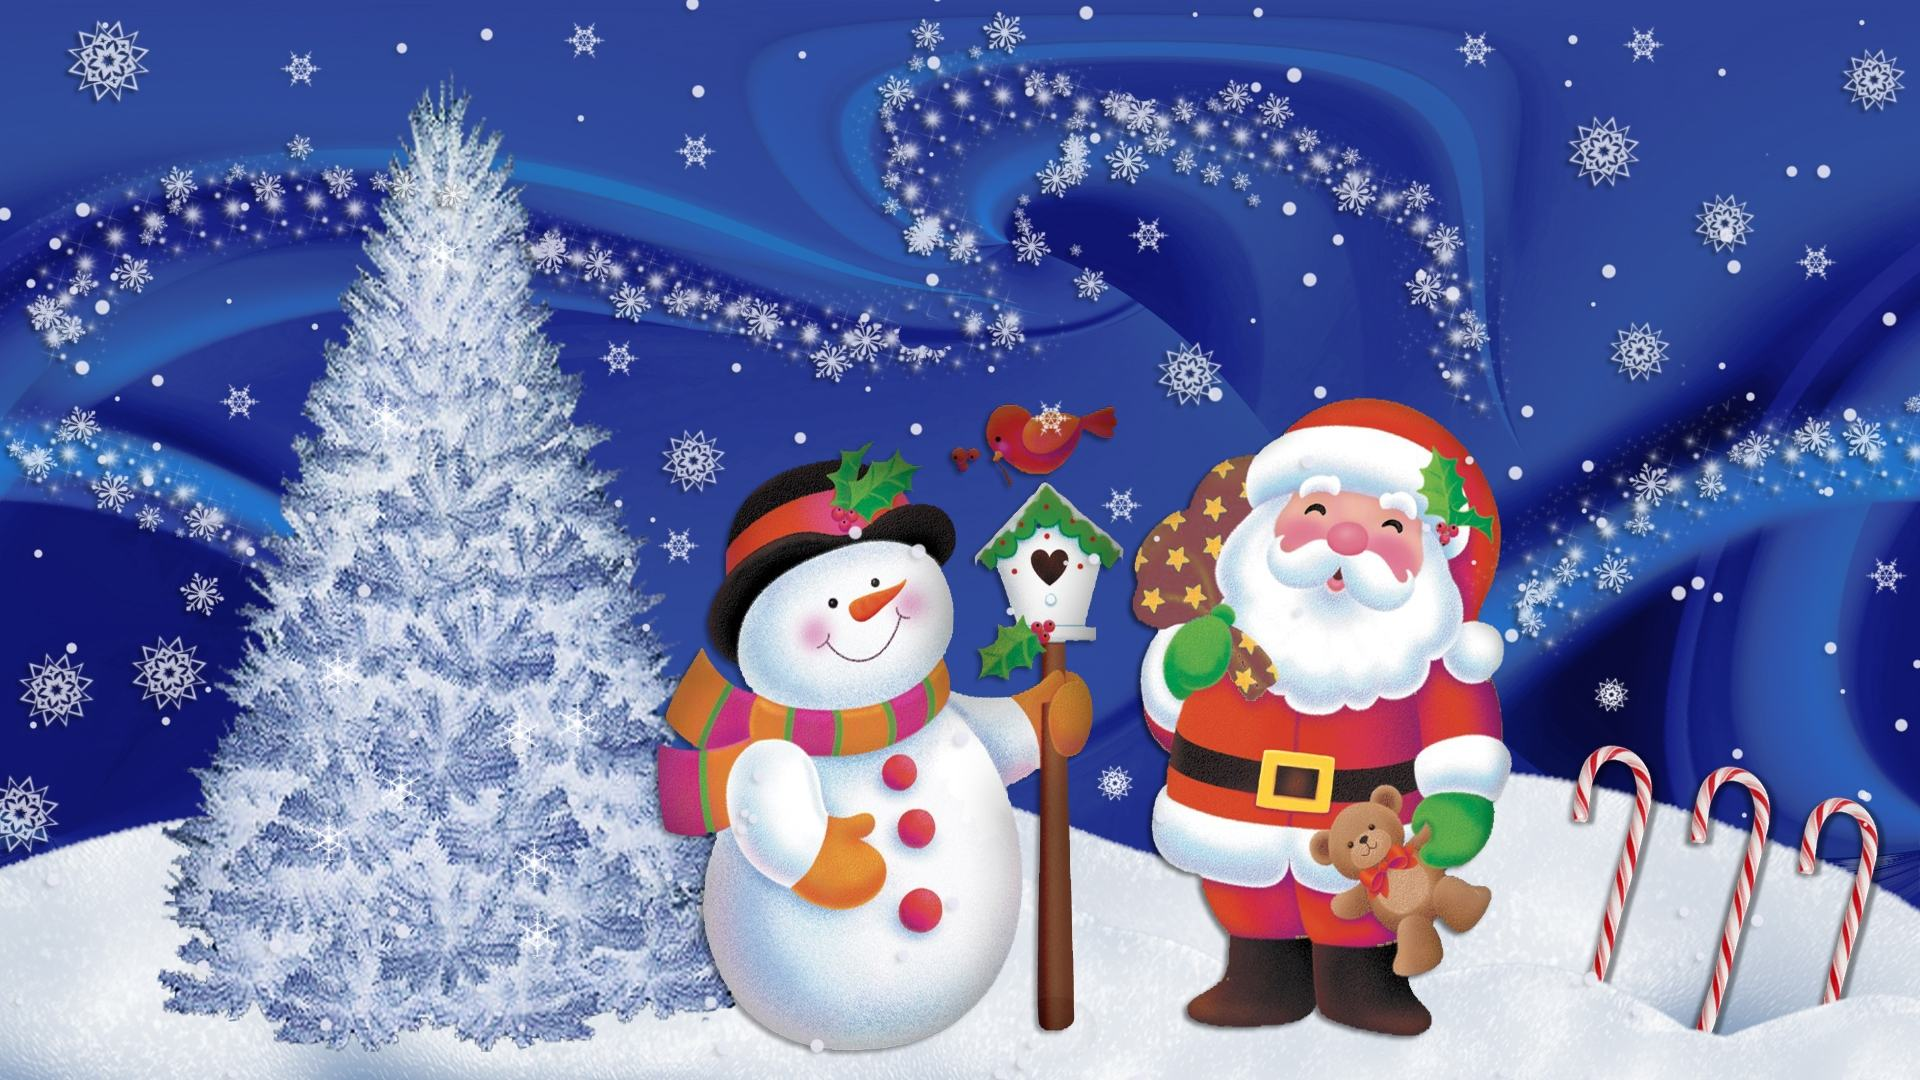 animated christmas wallpaper 24 - Pictures For Christmas